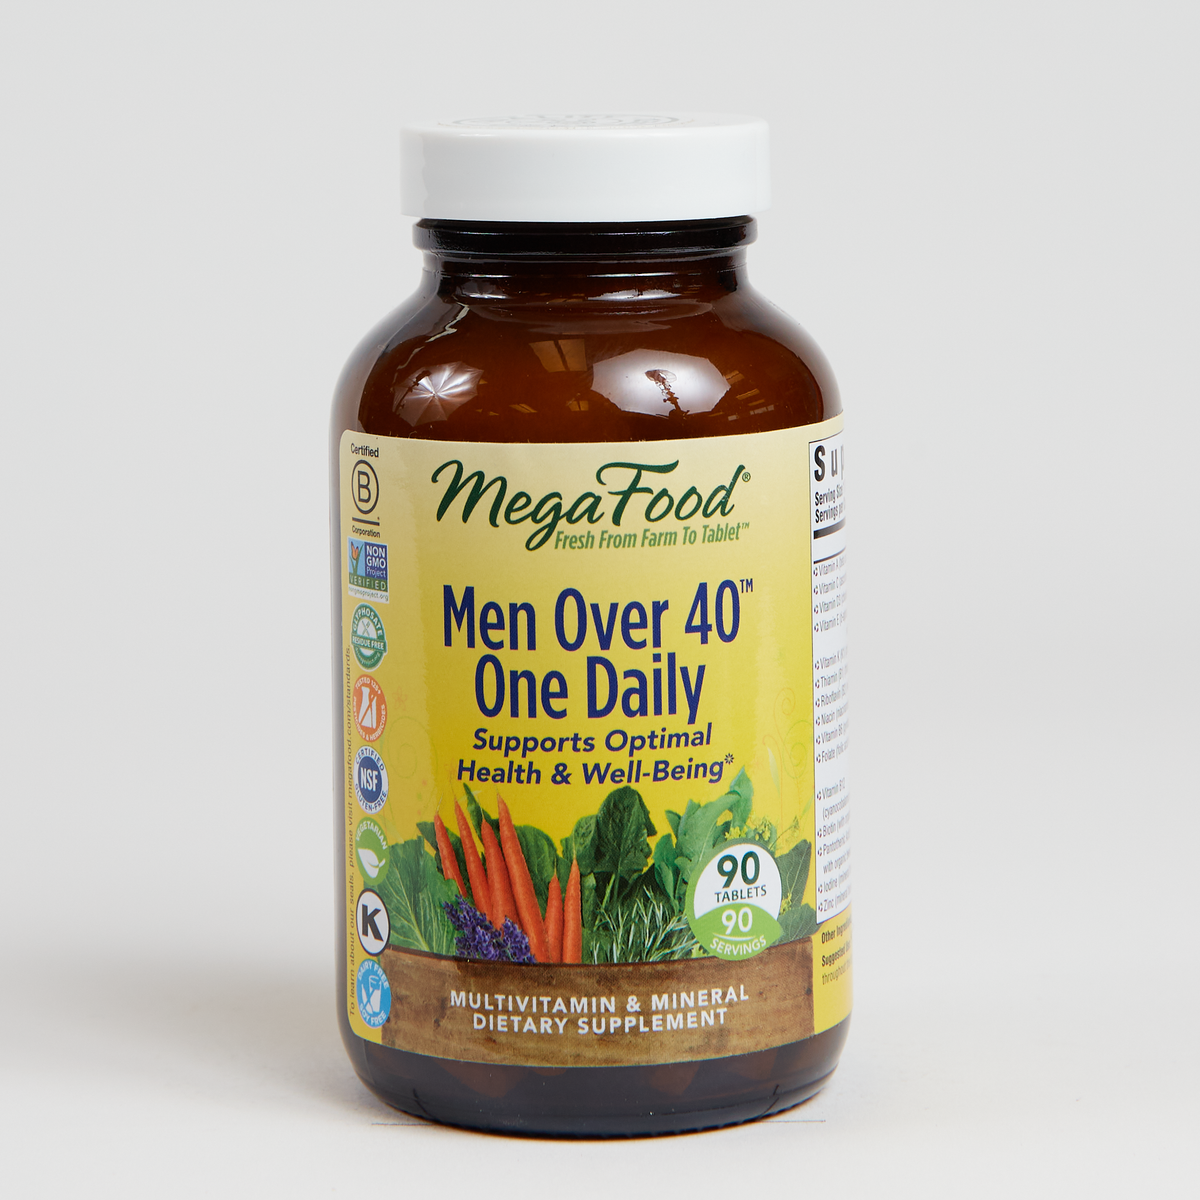 Megafood Men Over 40 One Daily - 90 Count